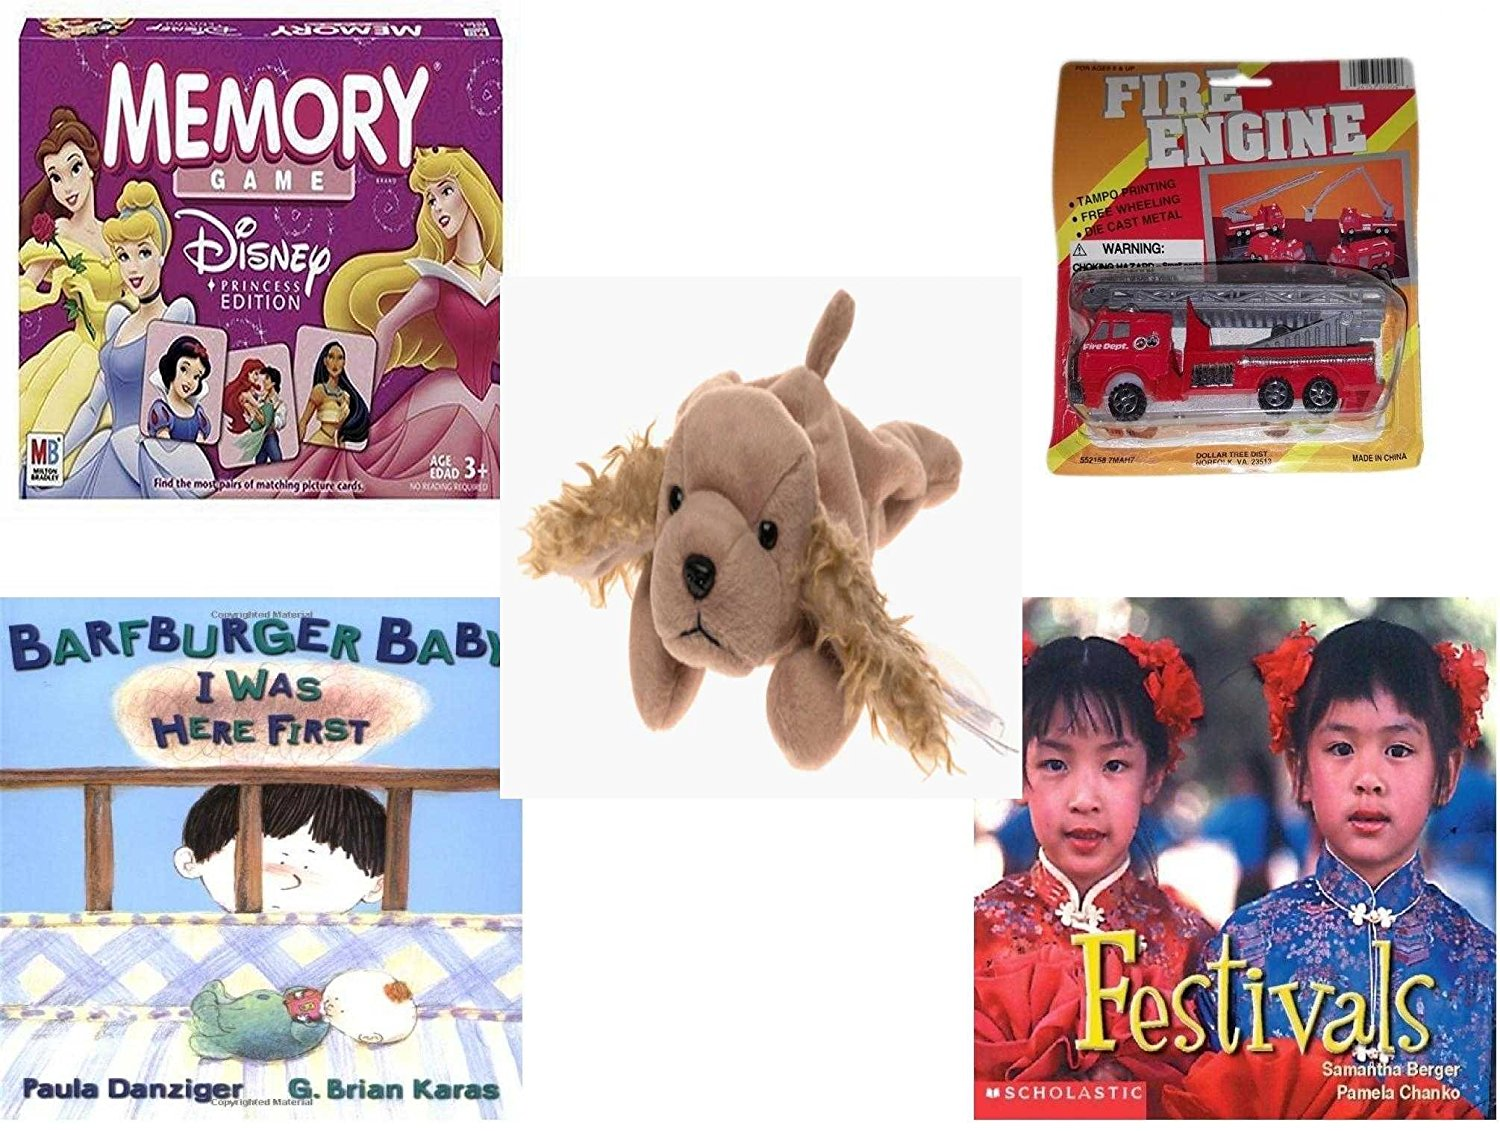 Children's Gift Bundle - Ages 3-5 [5 Piece] - Disney Princess Edition Memory Game - Fire Engine Die-cast Metal Toy - Ty Beanie Baby - Spunky the Cocker Spaniel Dog - Barfburger Baby, I Was Here Firs